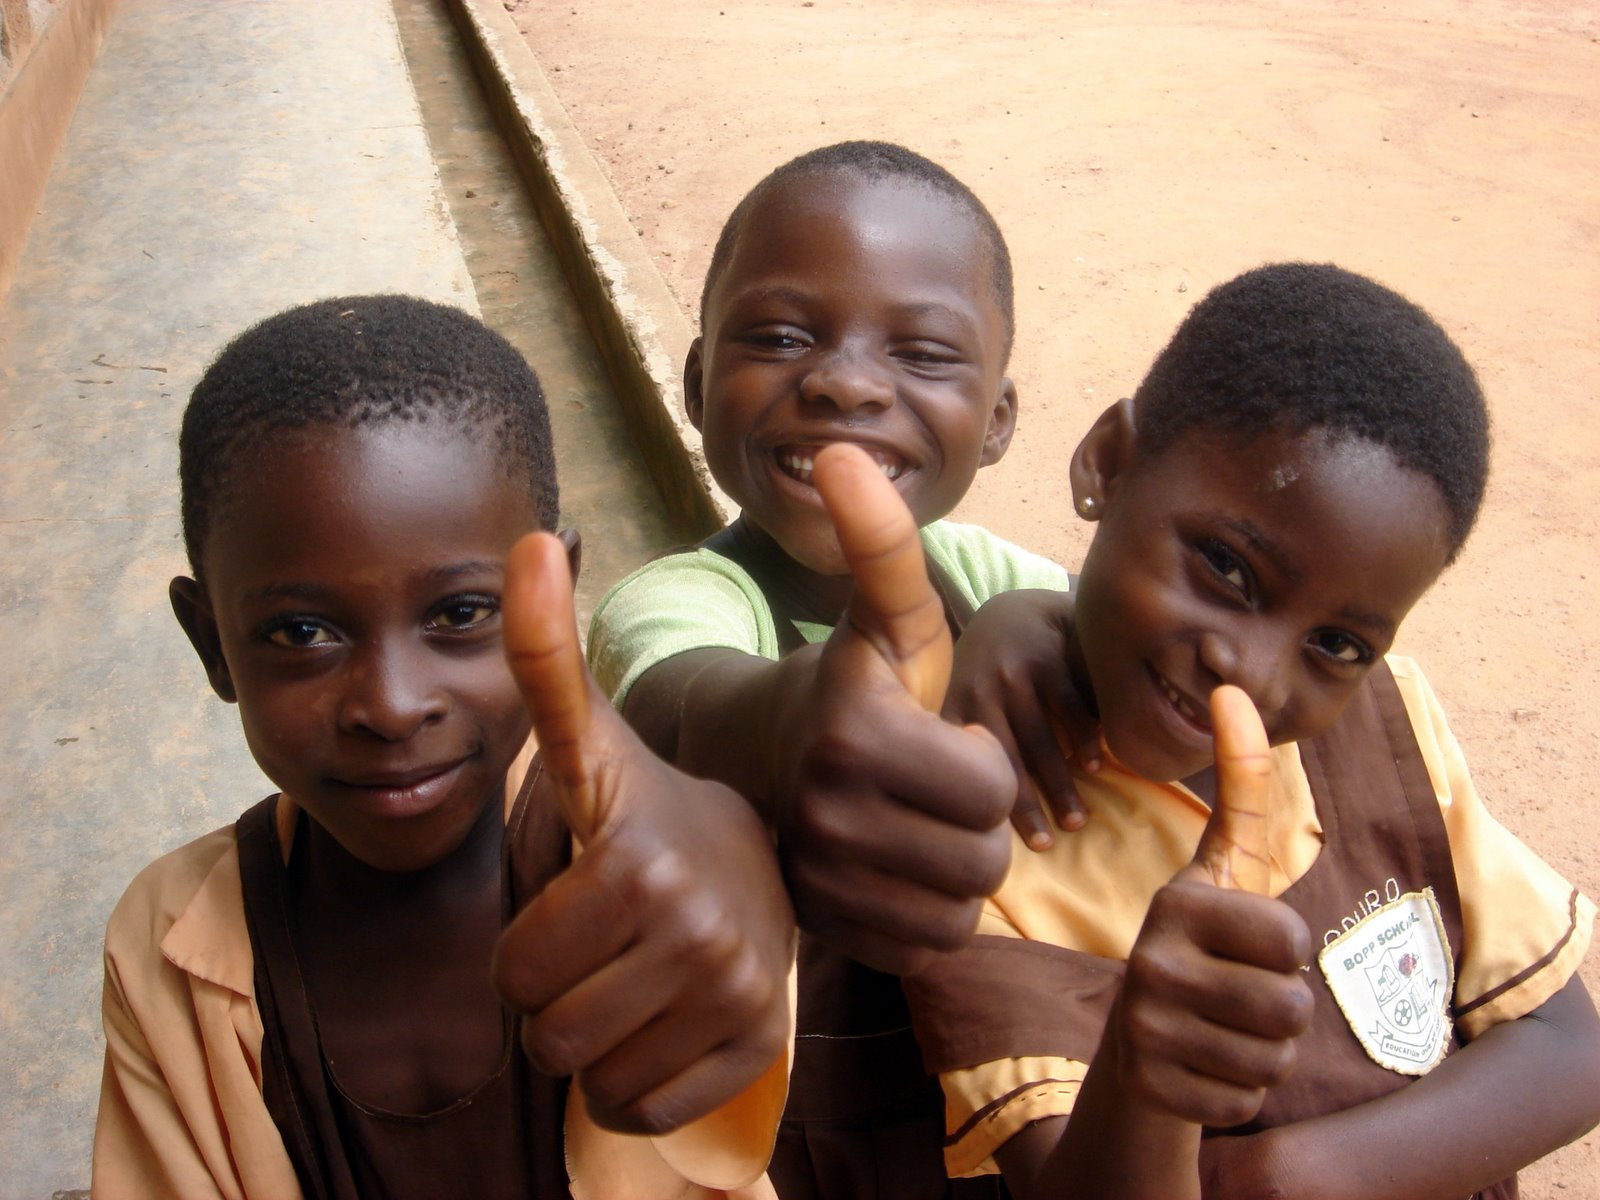 Ghanaian kids thumbs up